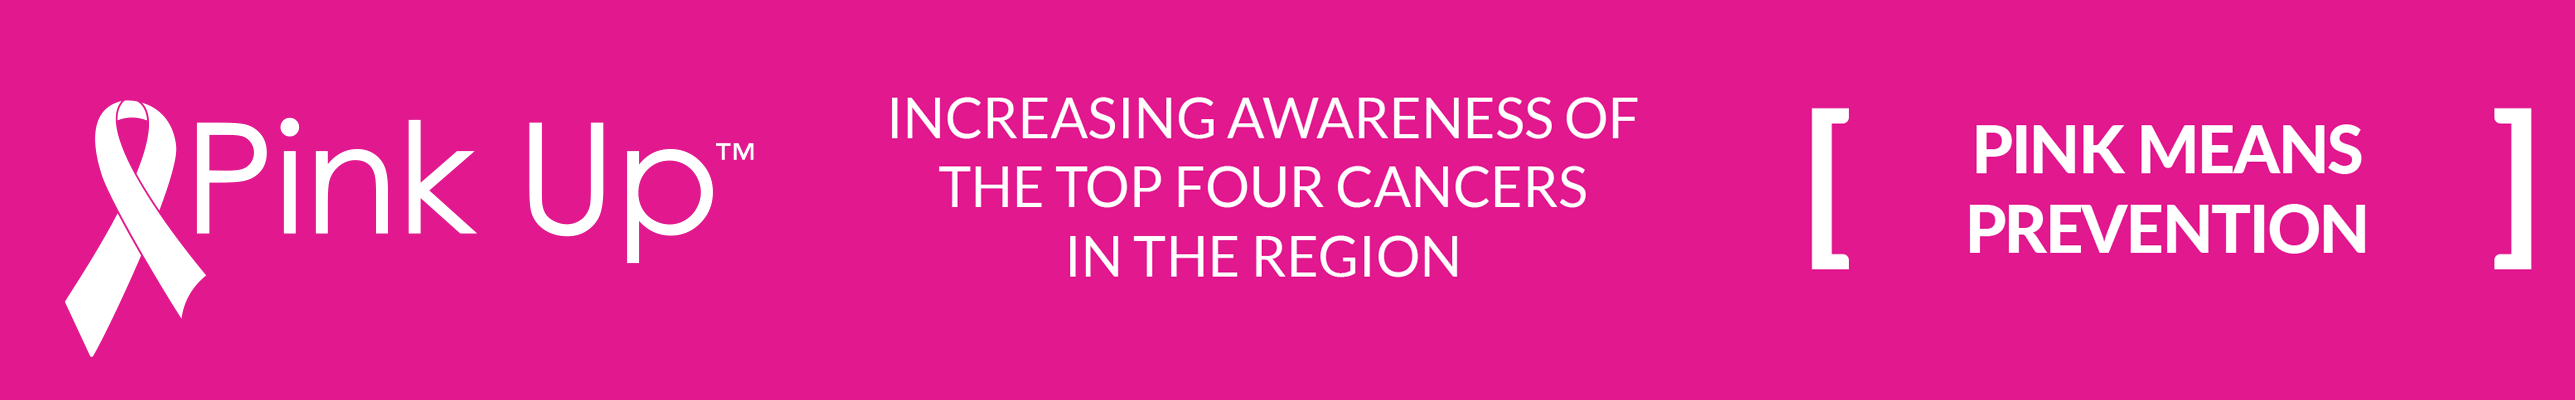 Pink Up - Increasing awareness of the top four cancers in the region. Pink means prevention.